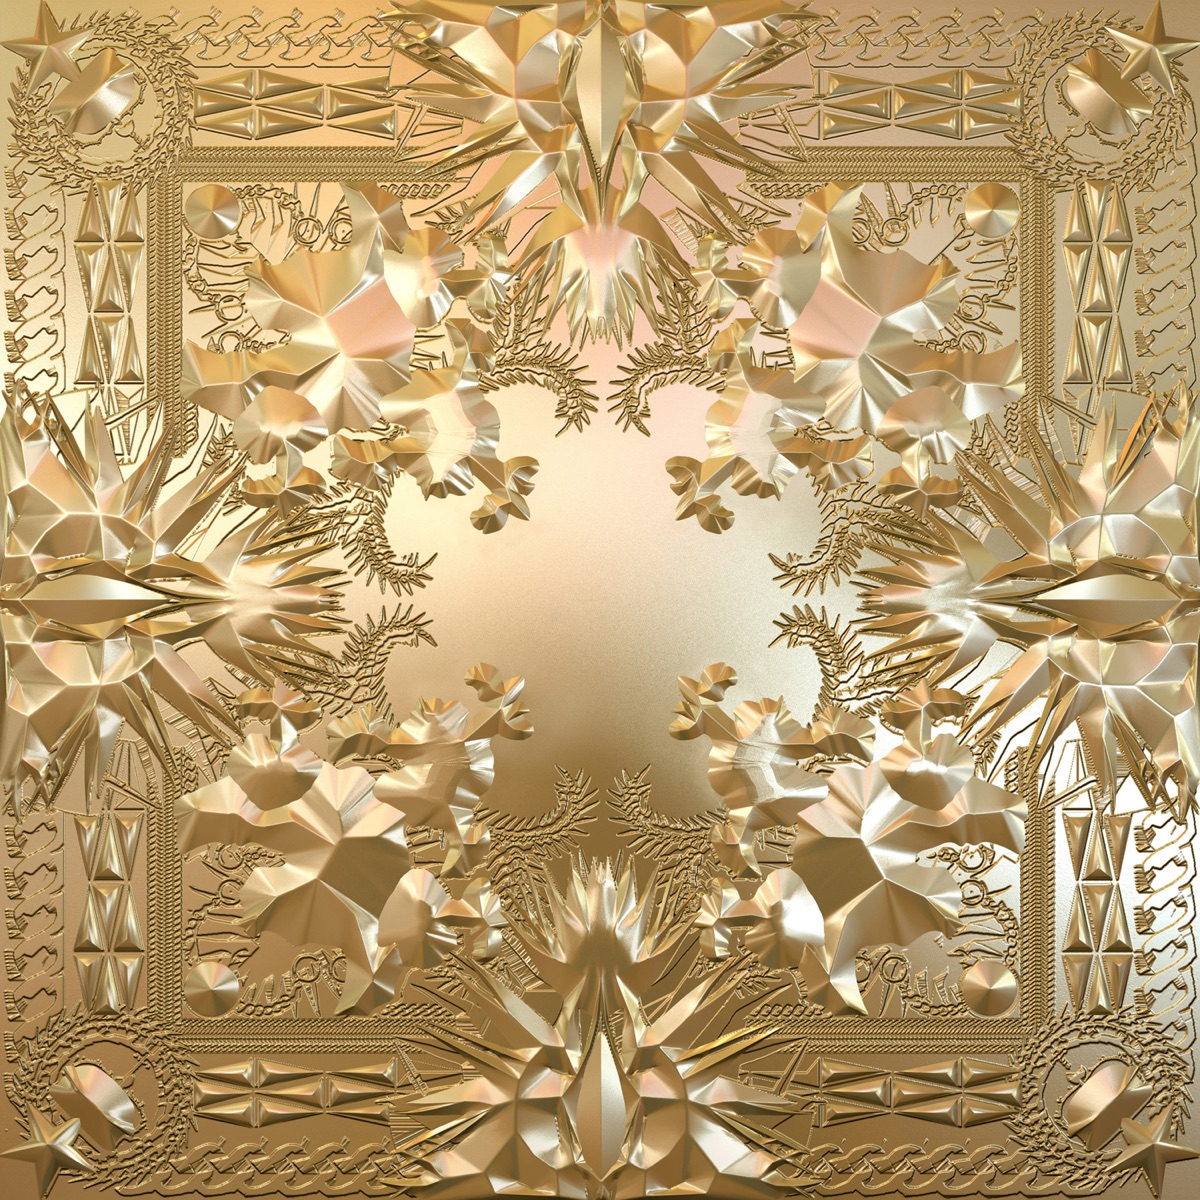 Watch the Throne JAY-Z  Kanye West CD cover